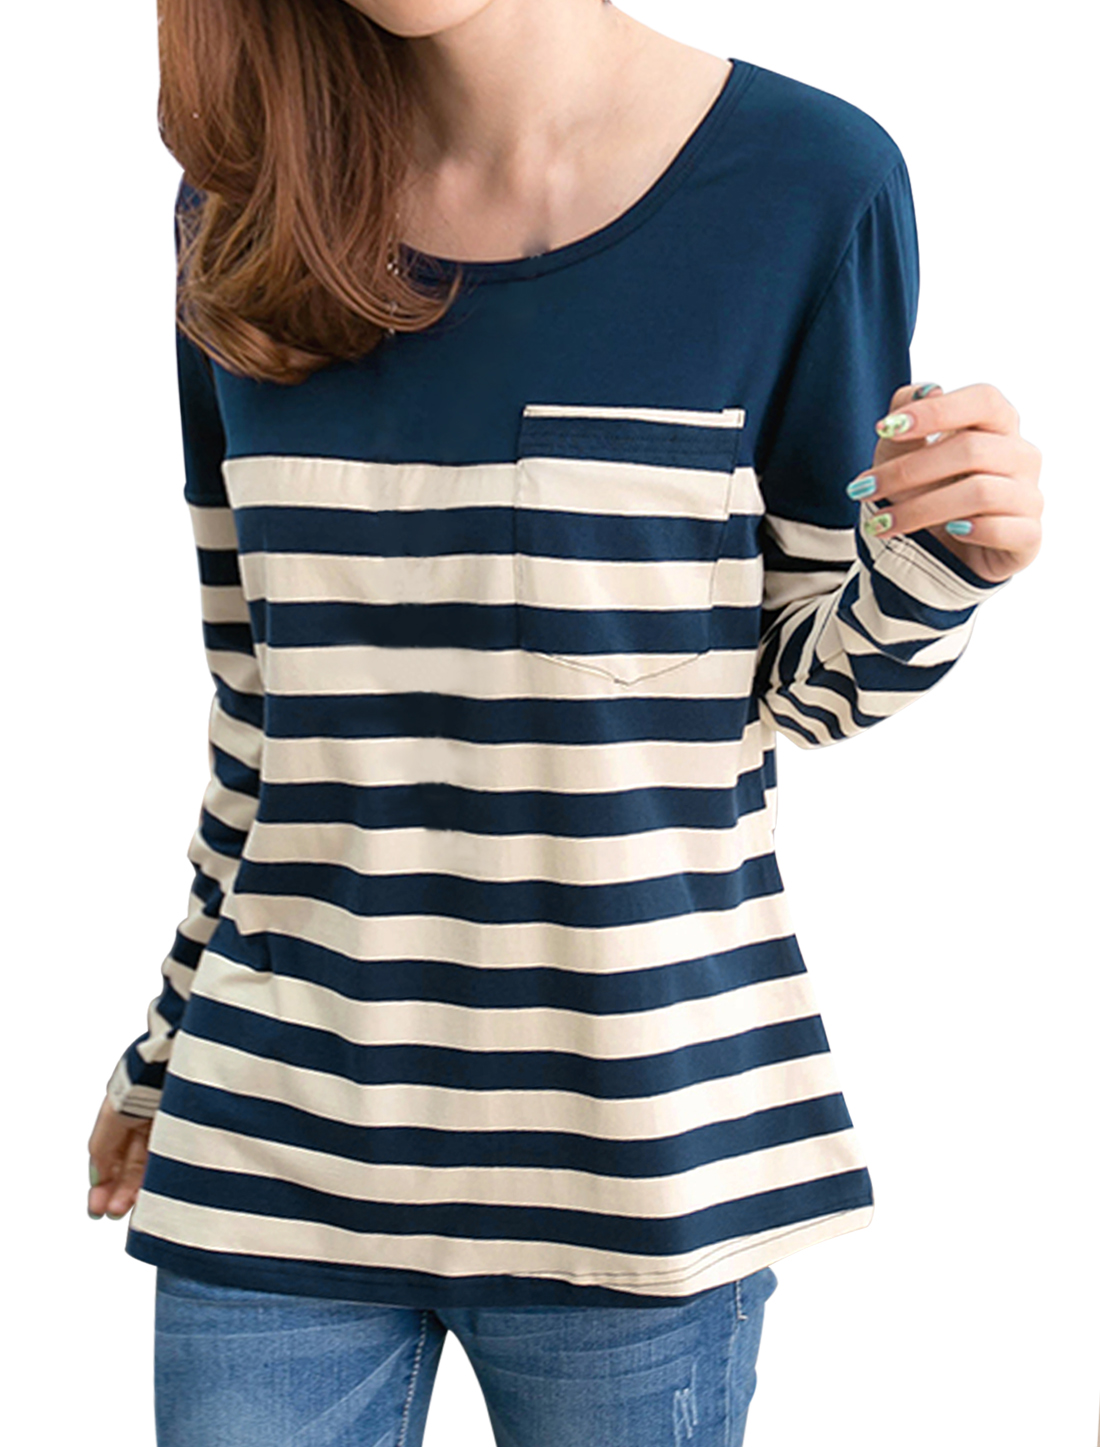 Lady Round Neck Color Block Stripes Casual T-shirt Navy Blue Beige XS